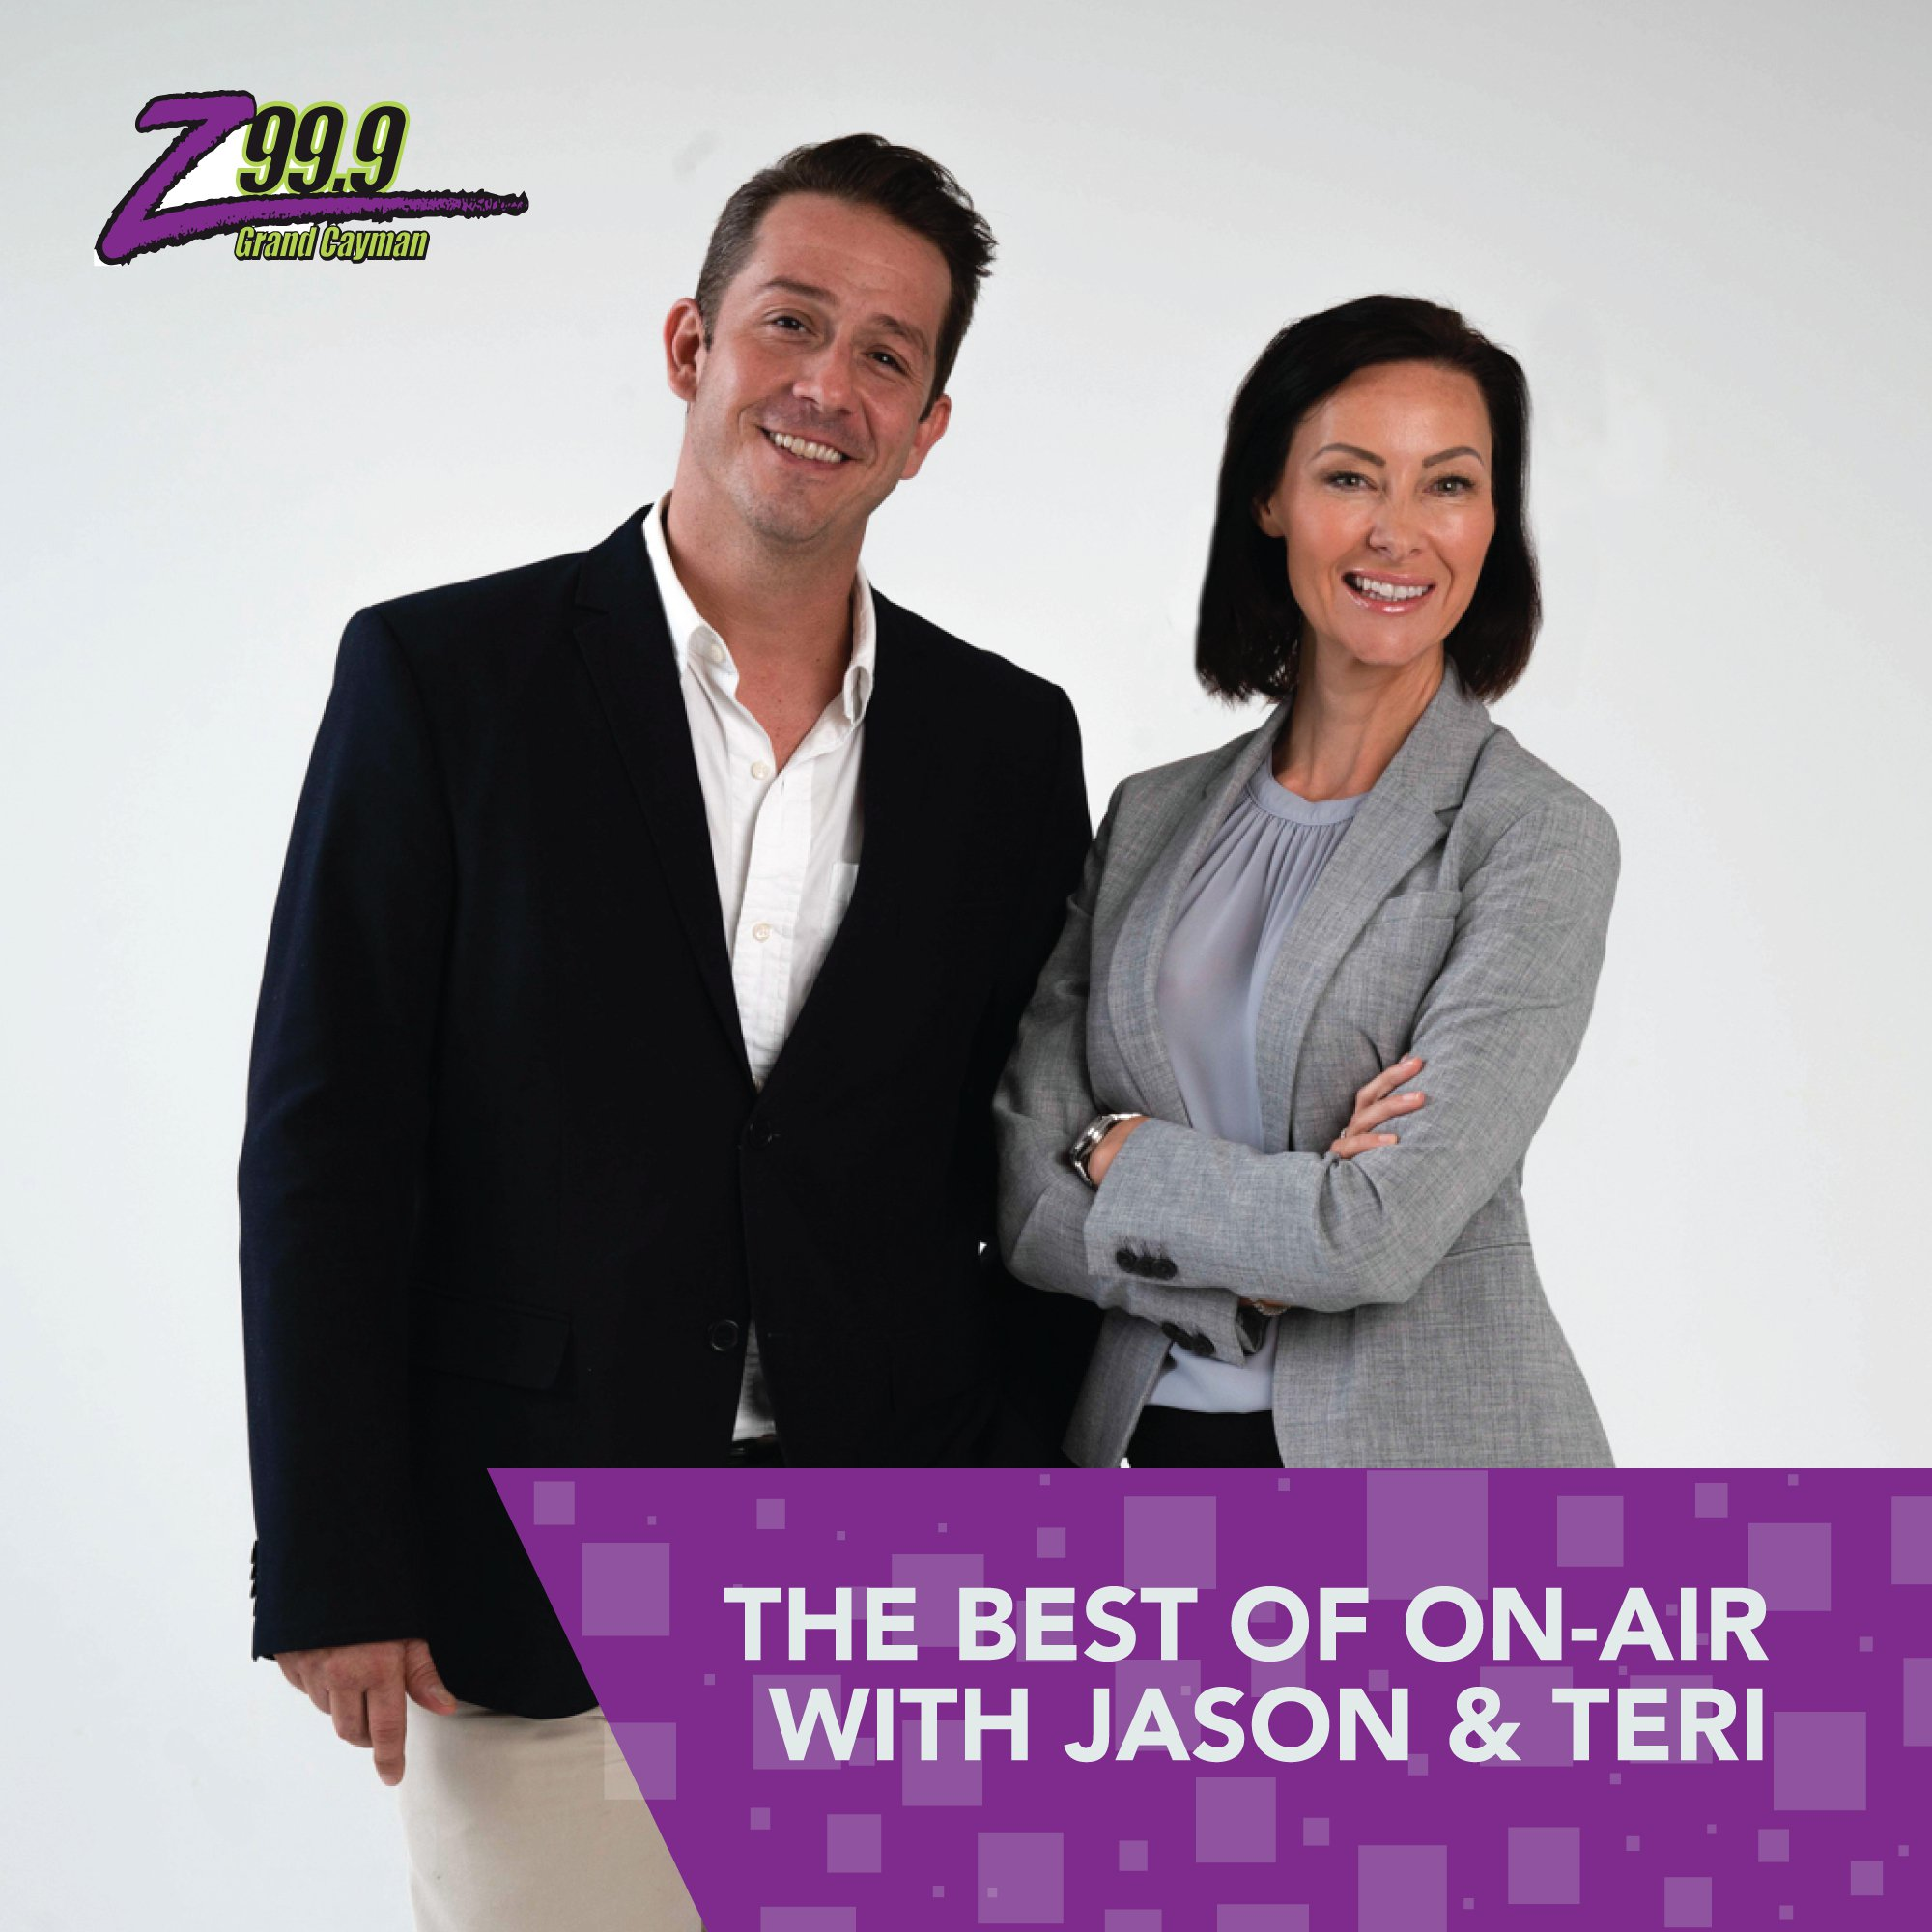 The Best Of On-Air With Mark & Teri | Z99 Grand Cayman